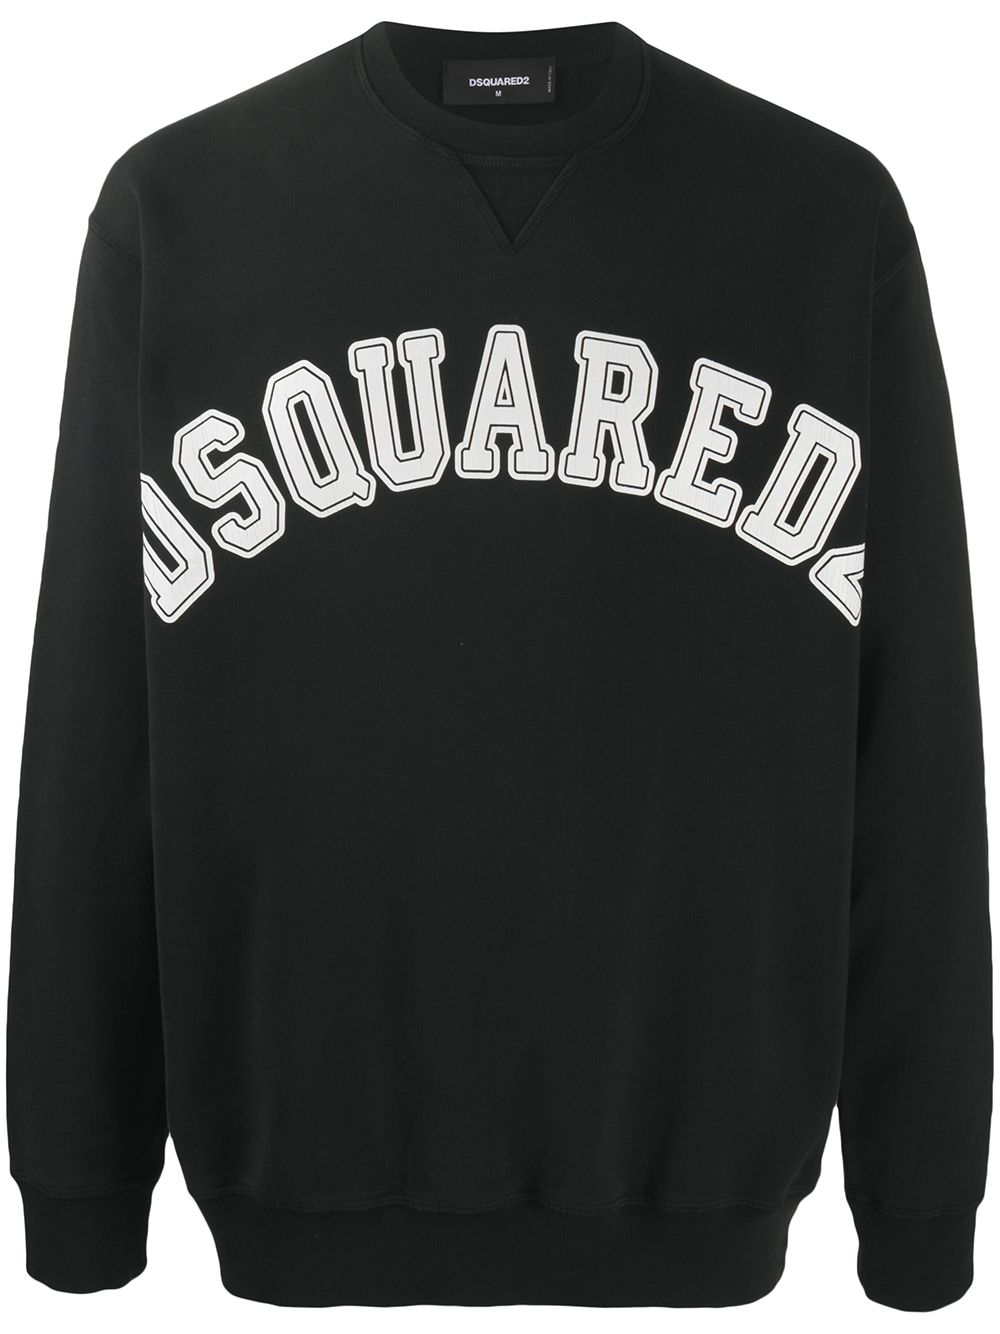 DSQUARED2 Cracked Logo Sweatshirt Black